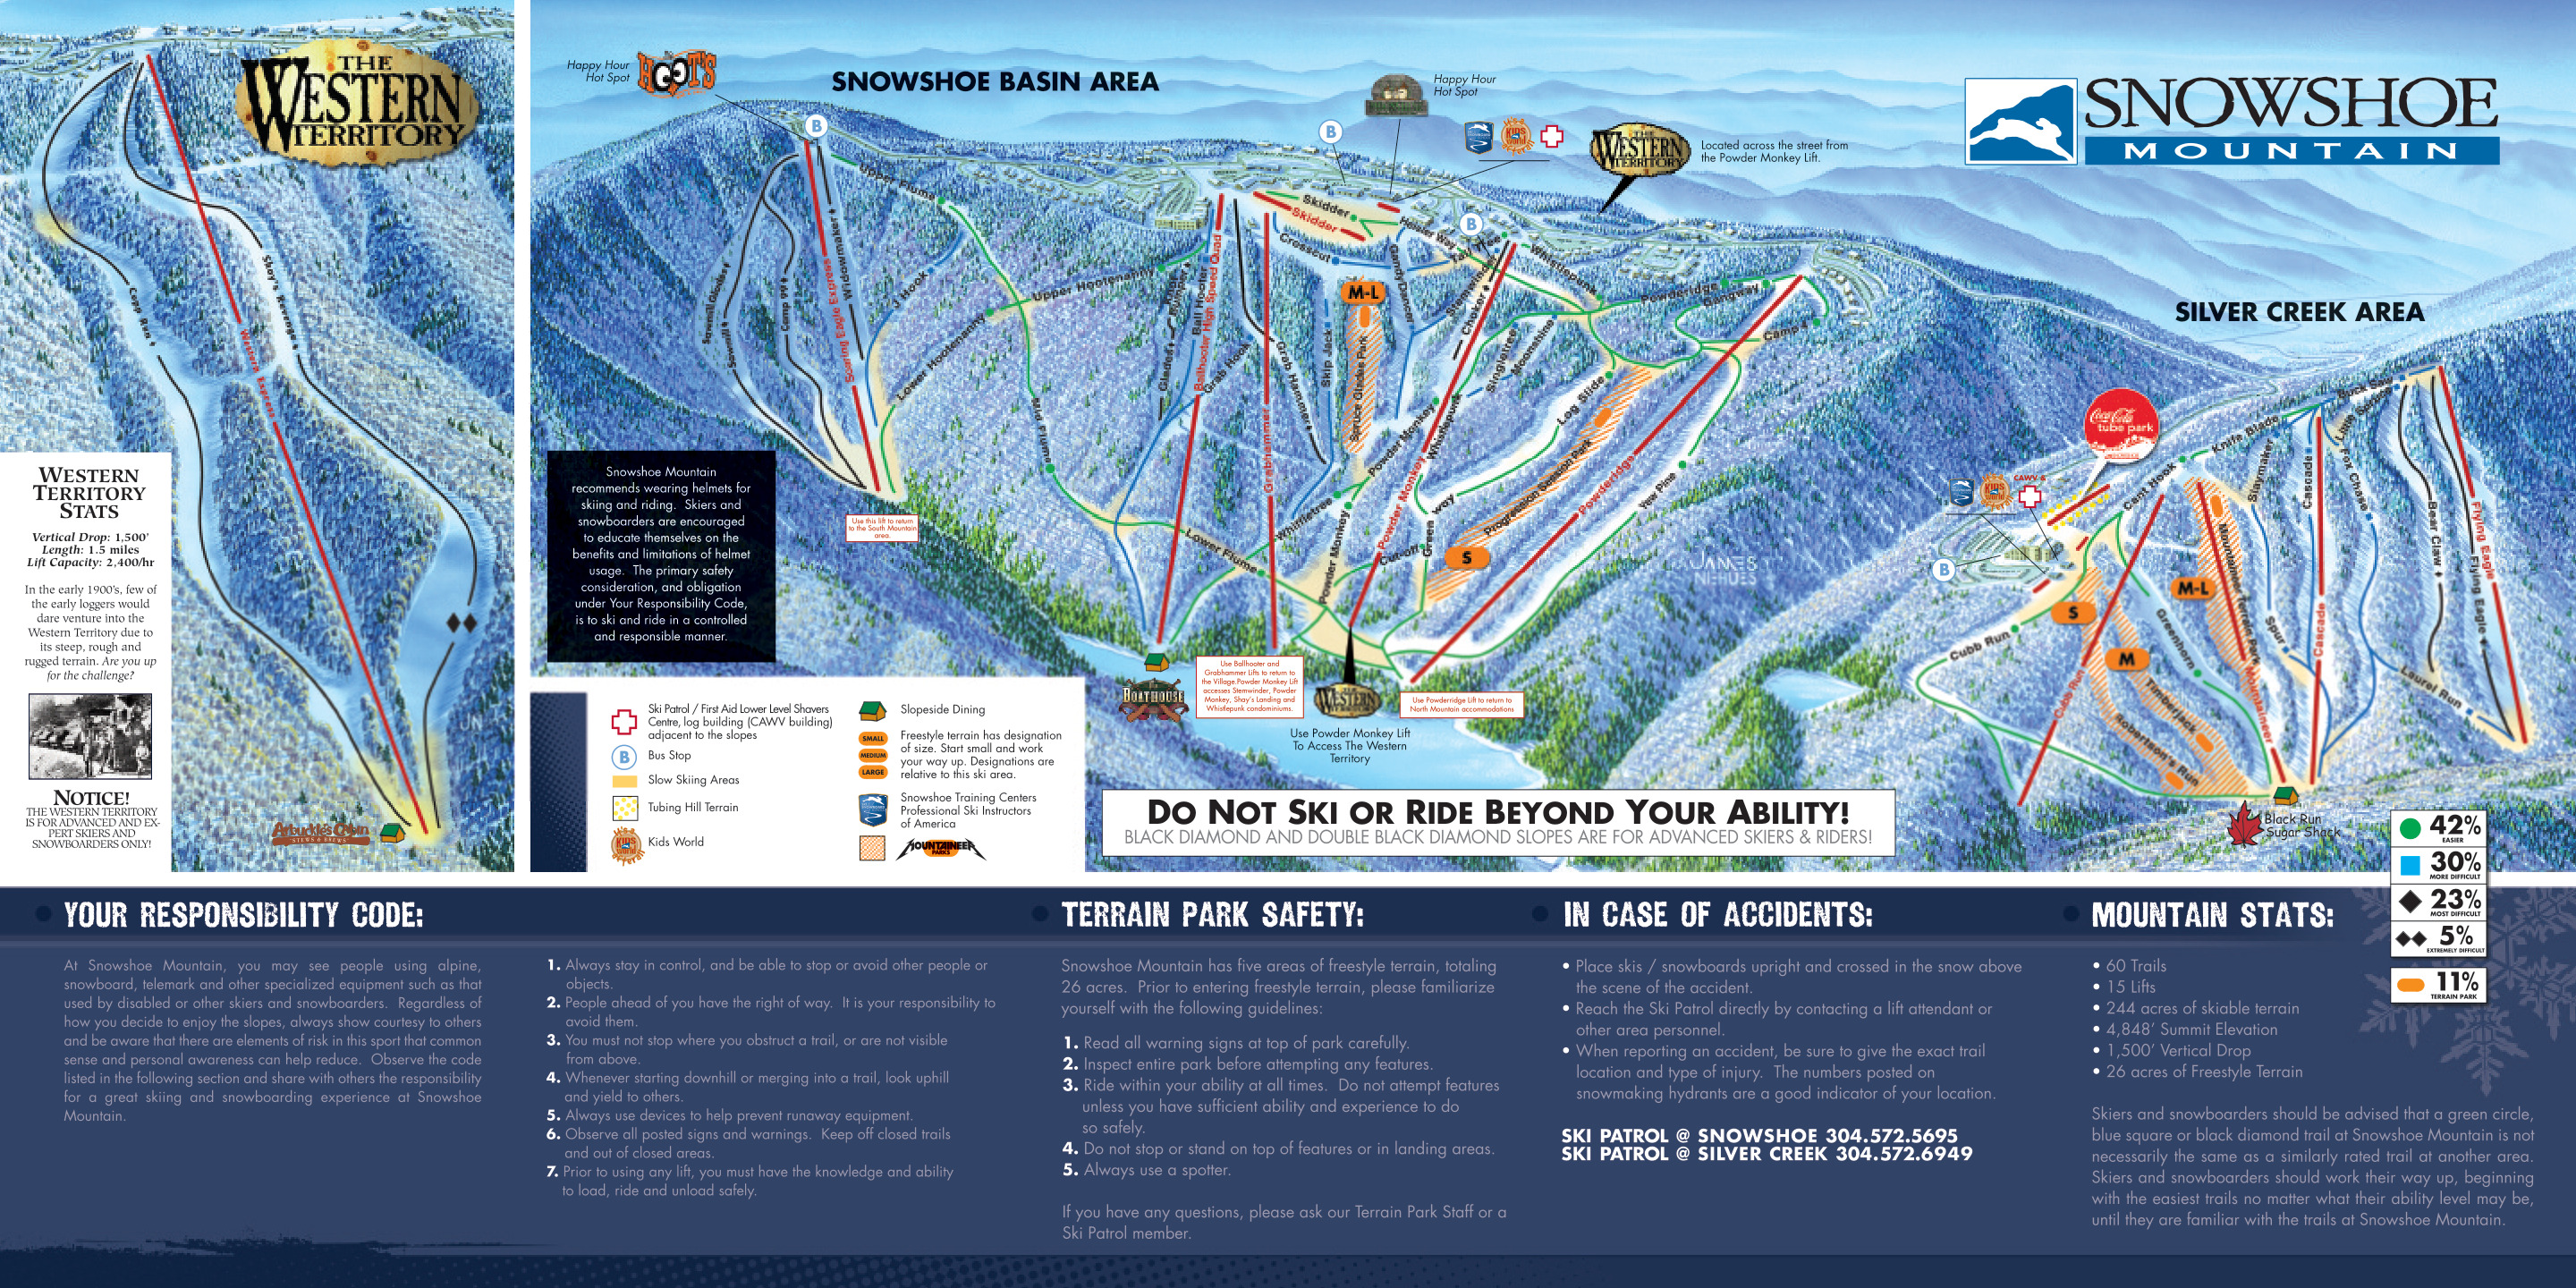 Snowshoe Mountain - SkiMap.org on